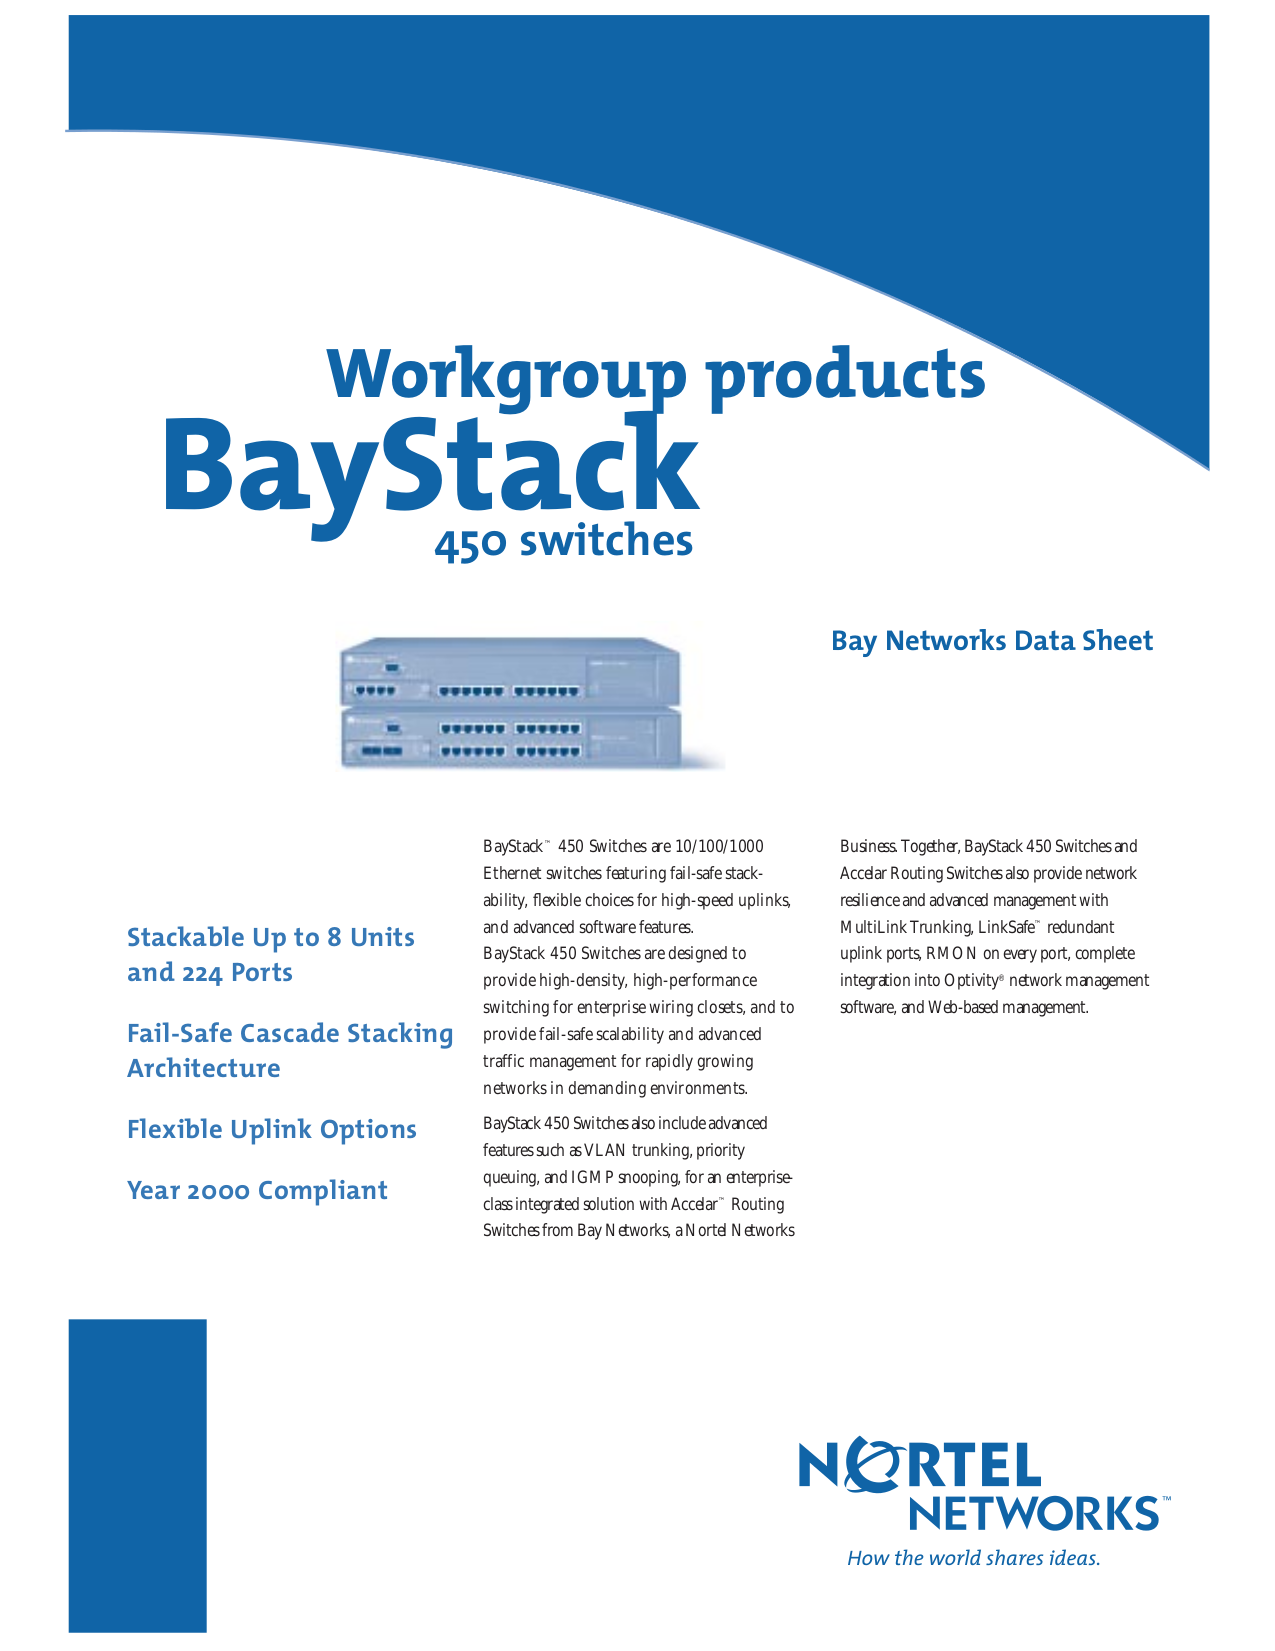 pdf for Nortel Switch BayStack 450-24T manual